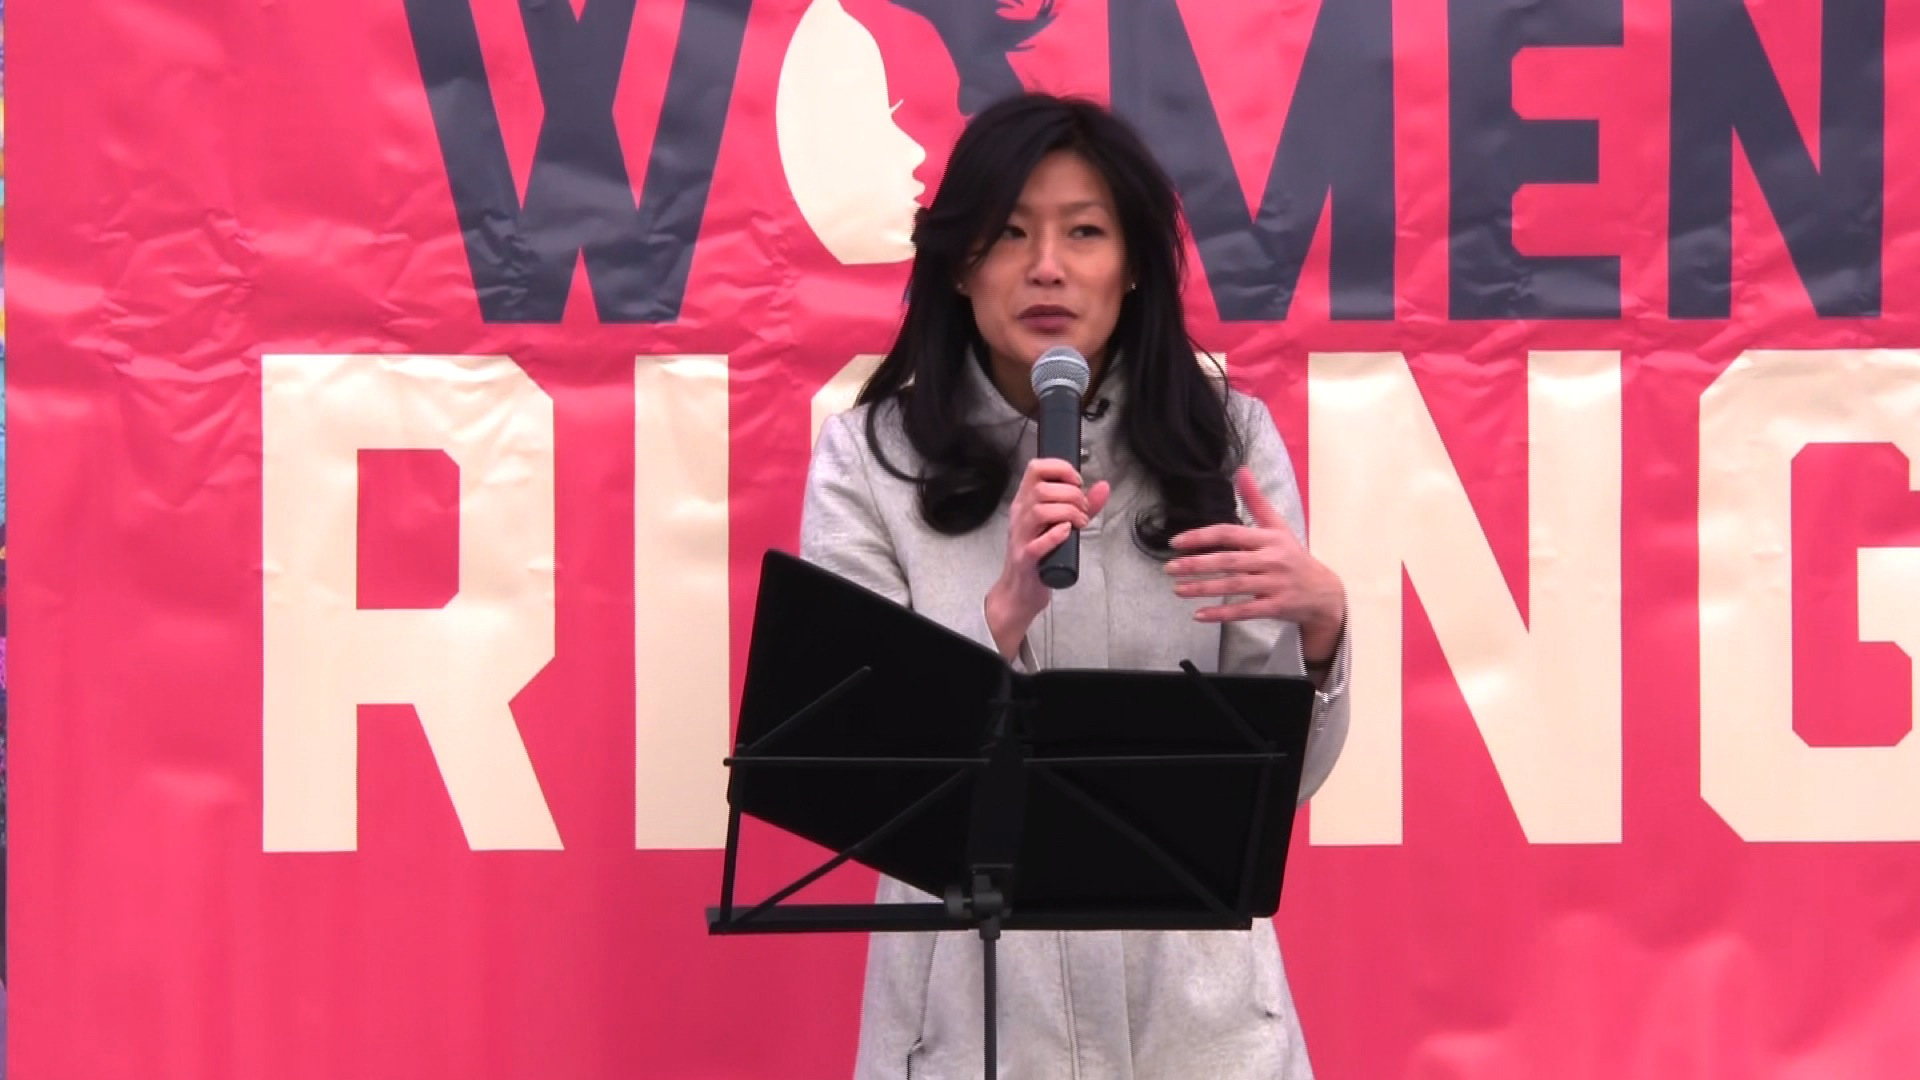 Evelyn Yang shares sexual assault survivor story at Women's March and says theme is 'very personal'